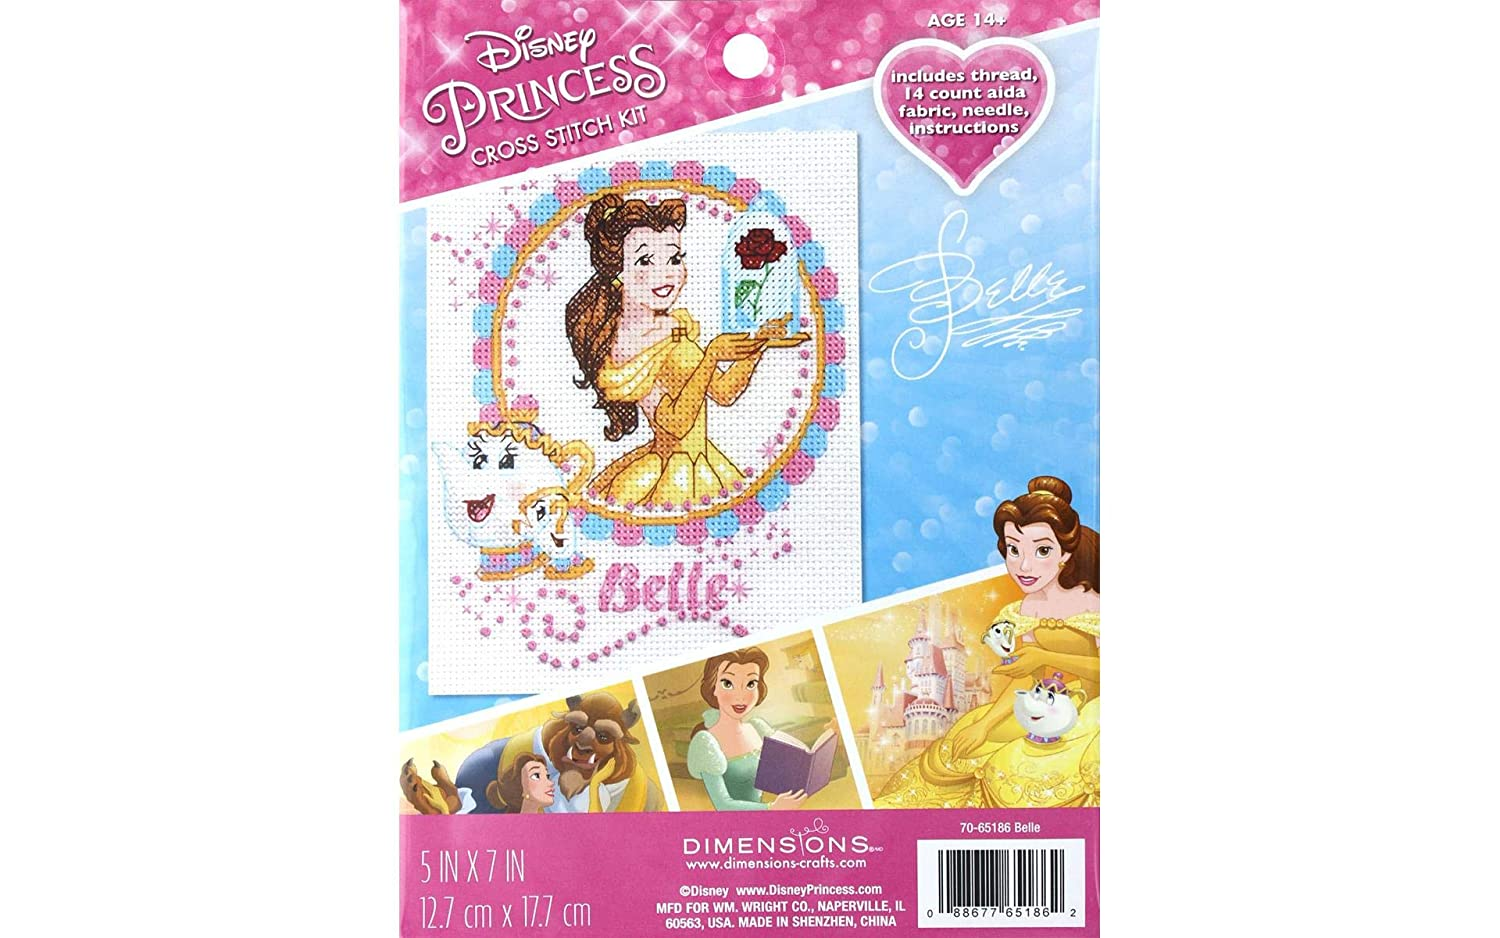 5 x 7 14 Count White Aida Dimensions Disney Beauty and the Beast Counted Cross Stitch Kit for beginners